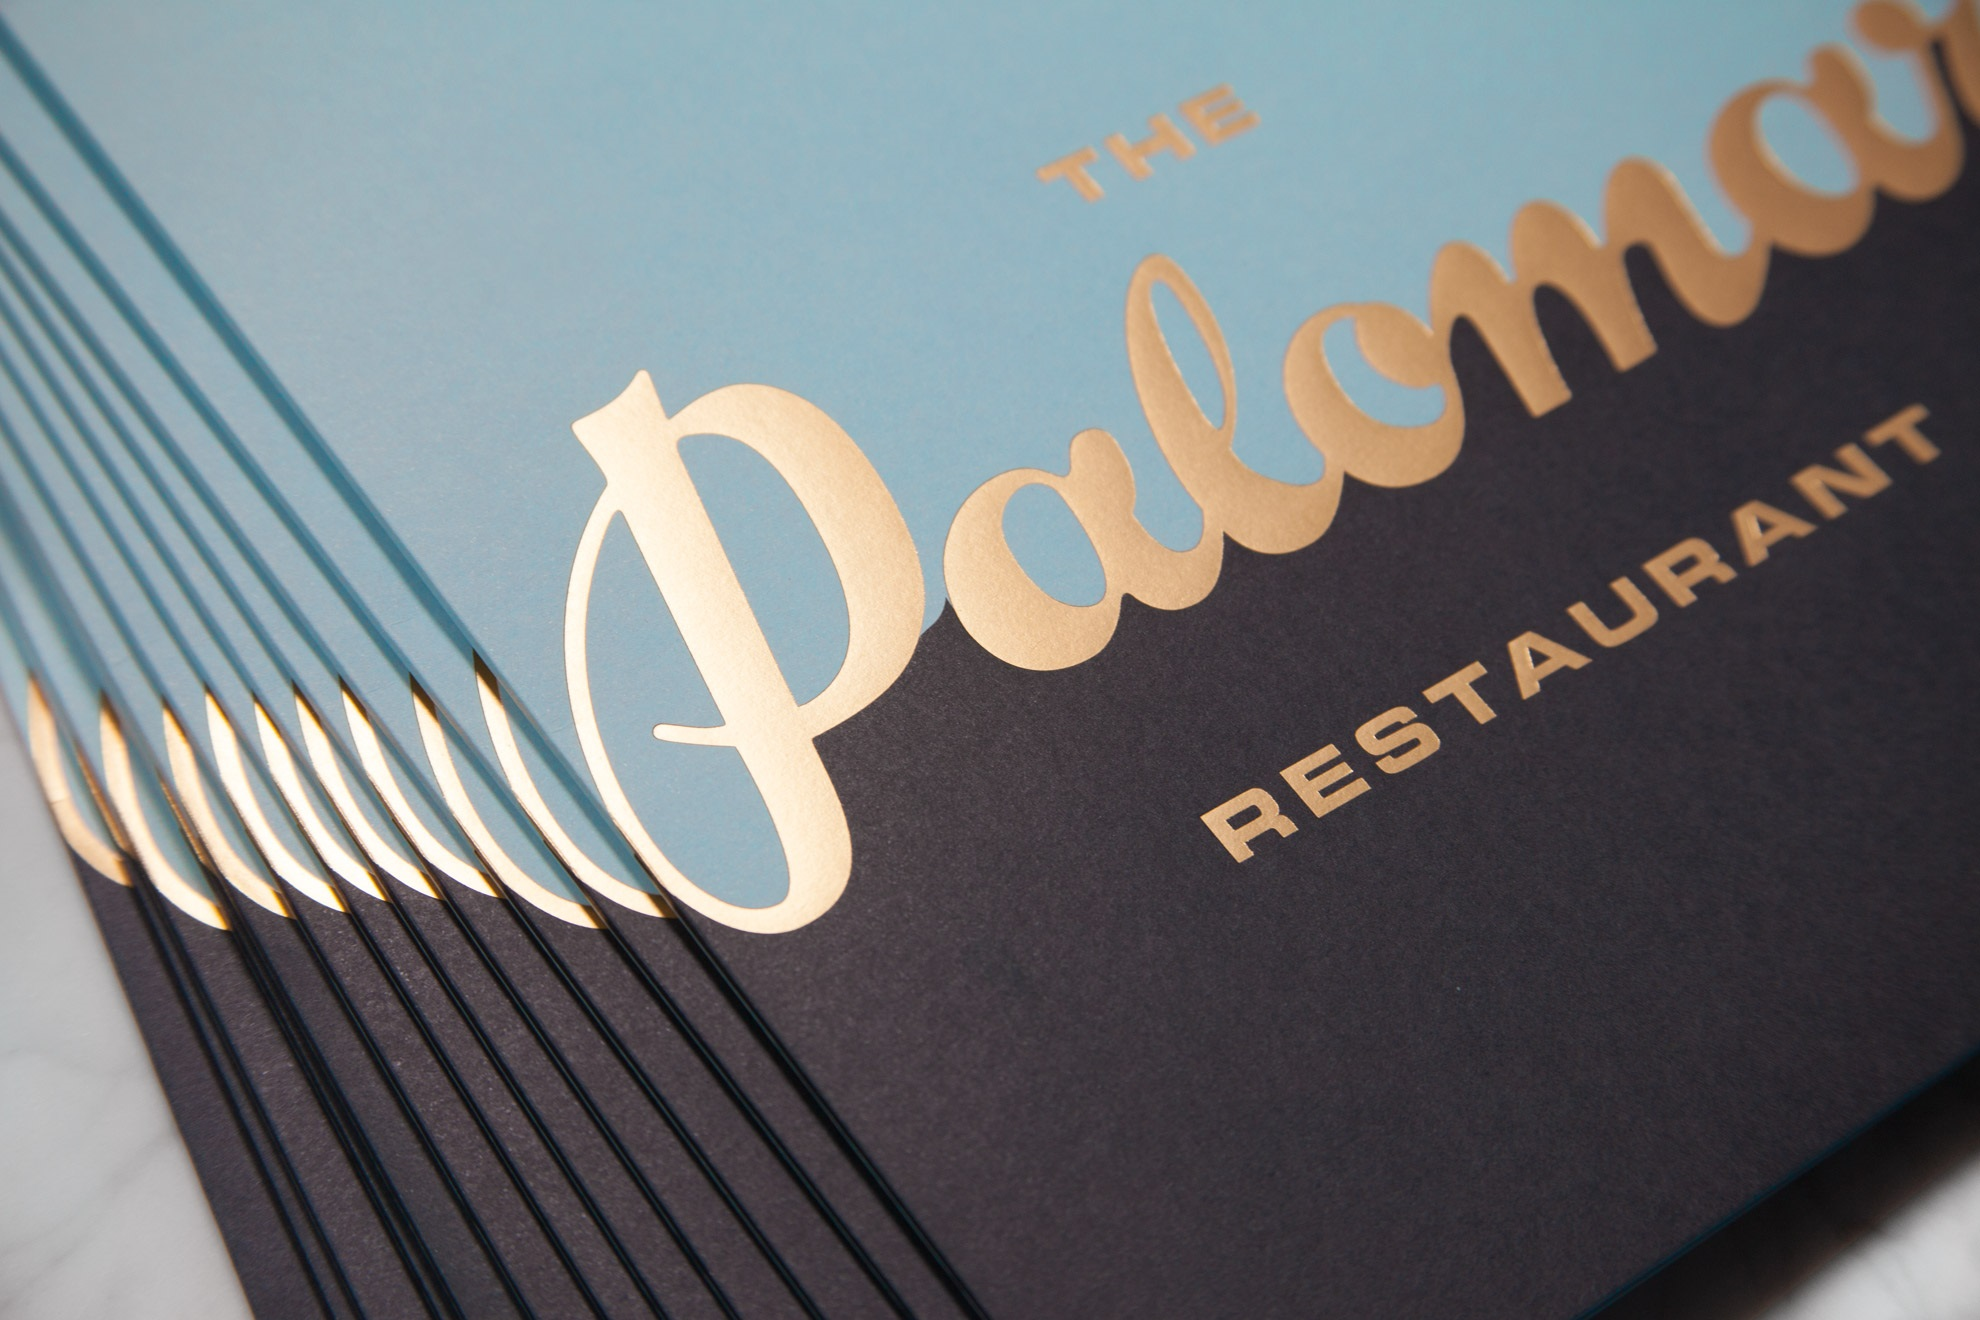 The Palomar - London